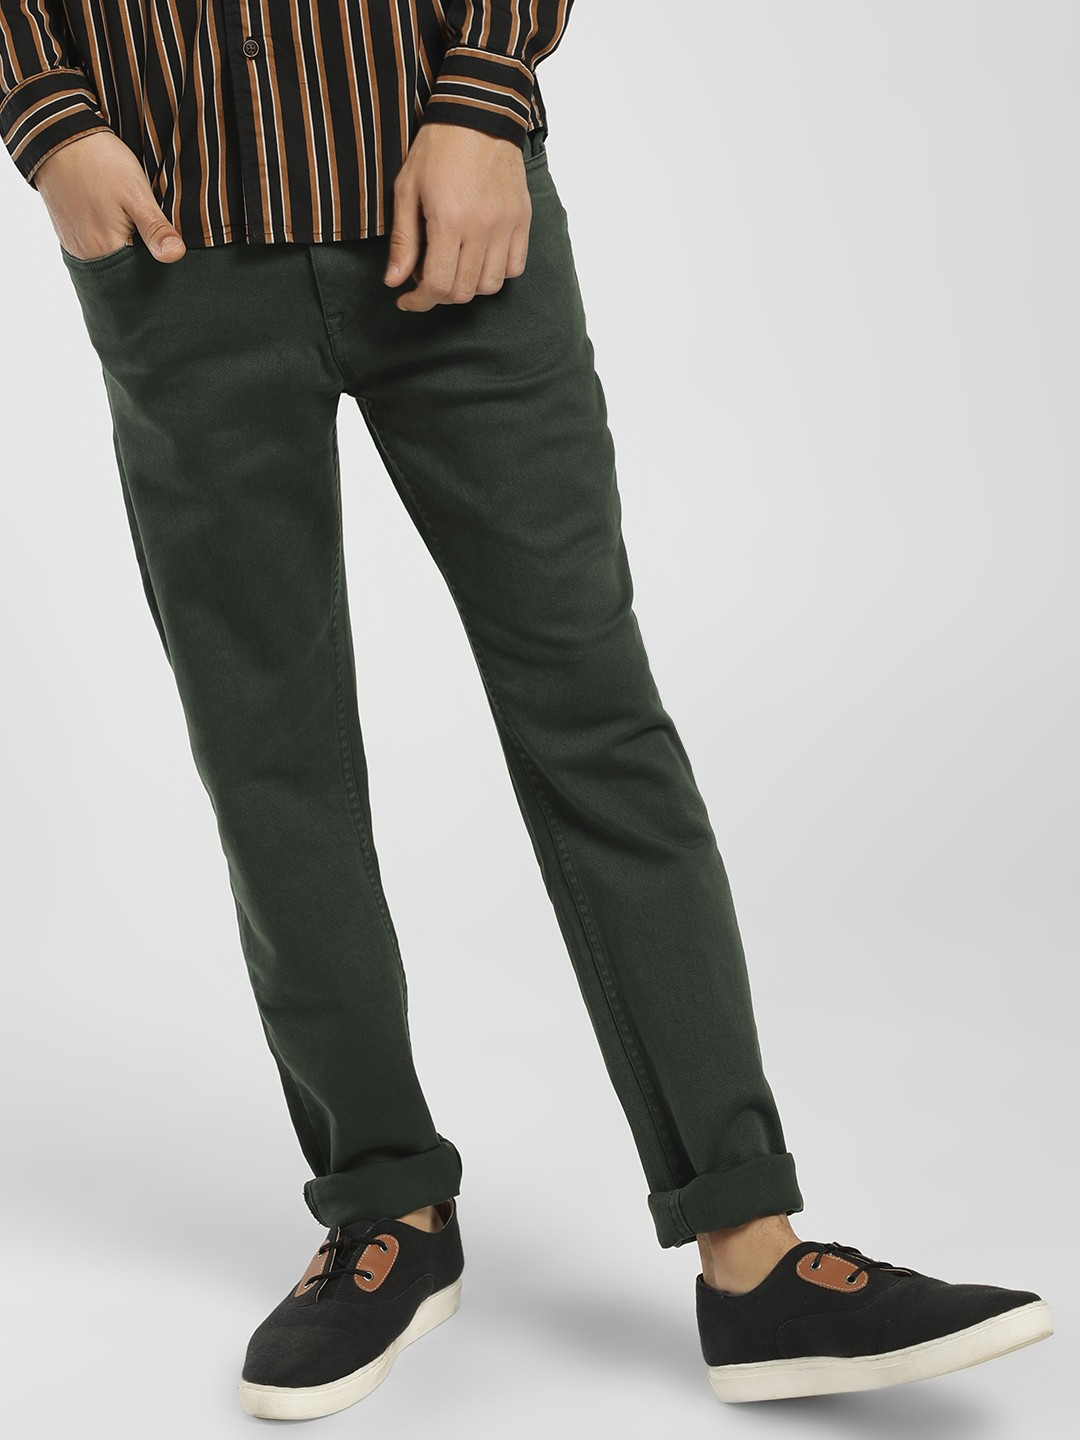 Blue Saint Green Overdyed Slim Fit Jeans 1